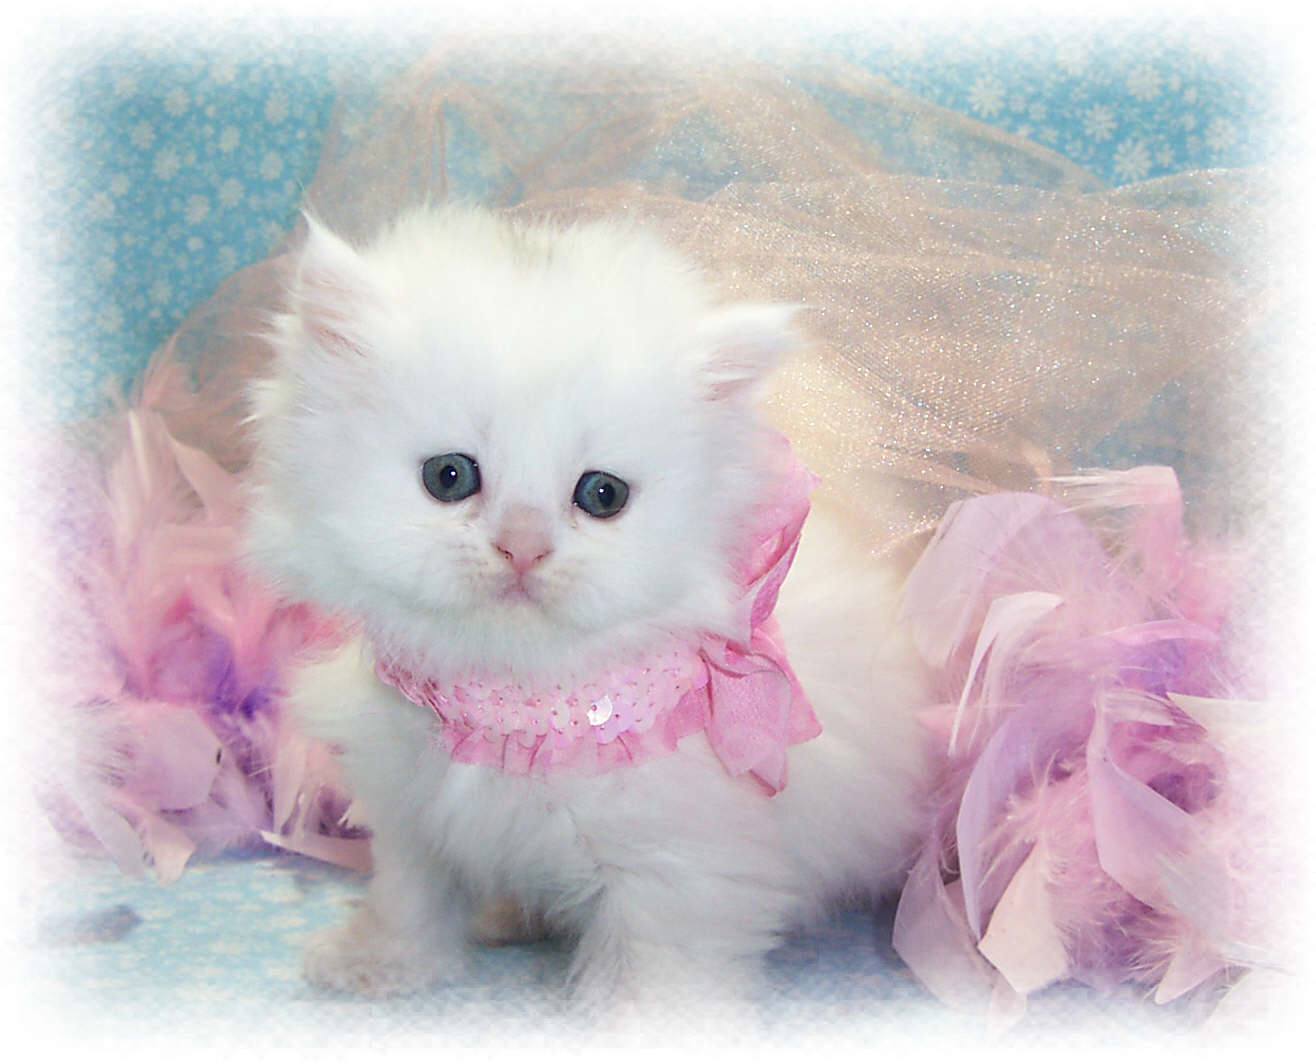 Cute cats hd wallpapers wallpaper202 for Adorable wallpapers